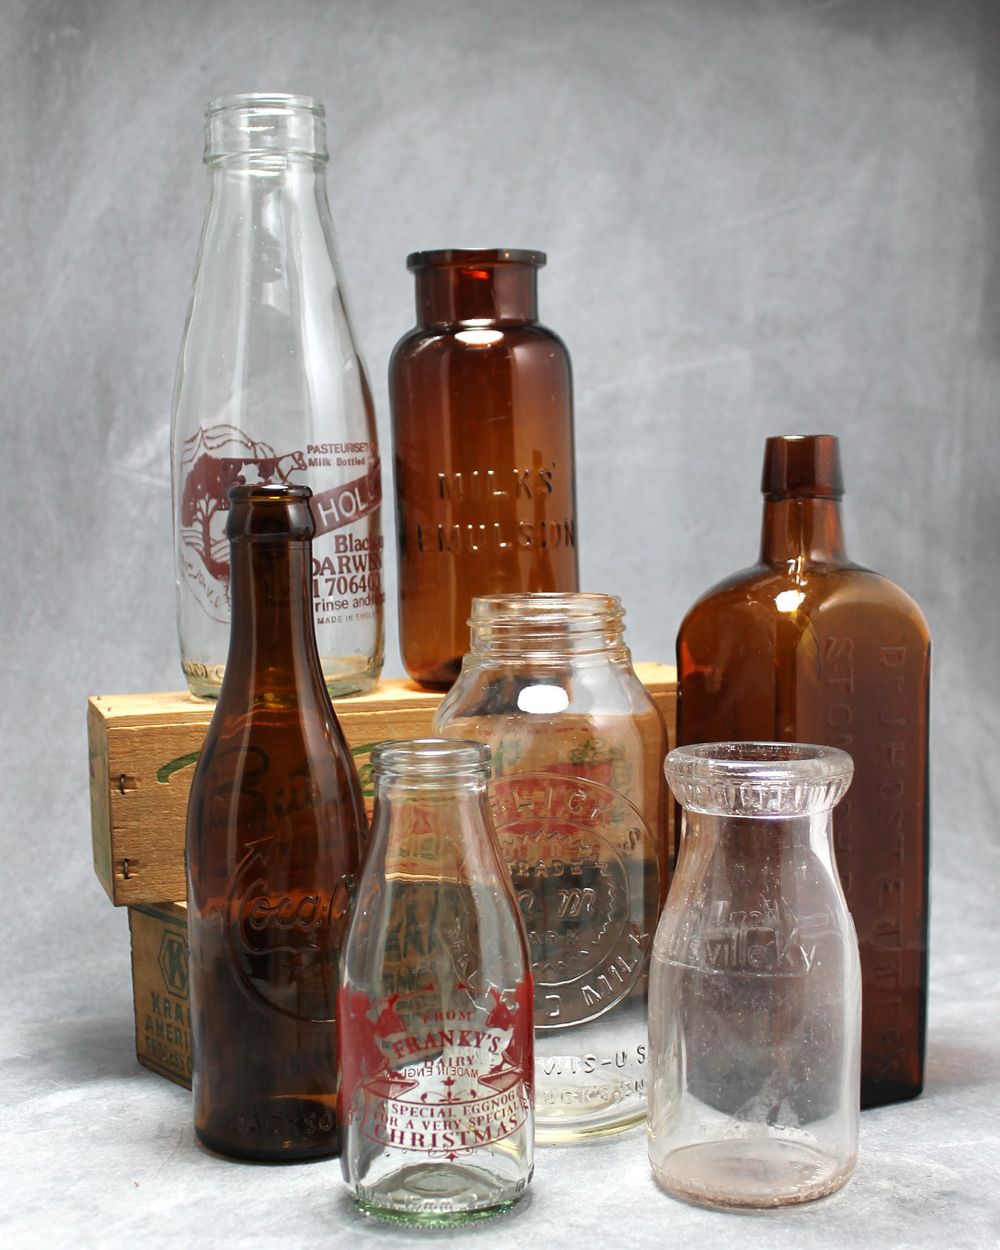 Just a few of my milk bottles and apothecary bottles. I love amber glass, especially for a fall wedding!